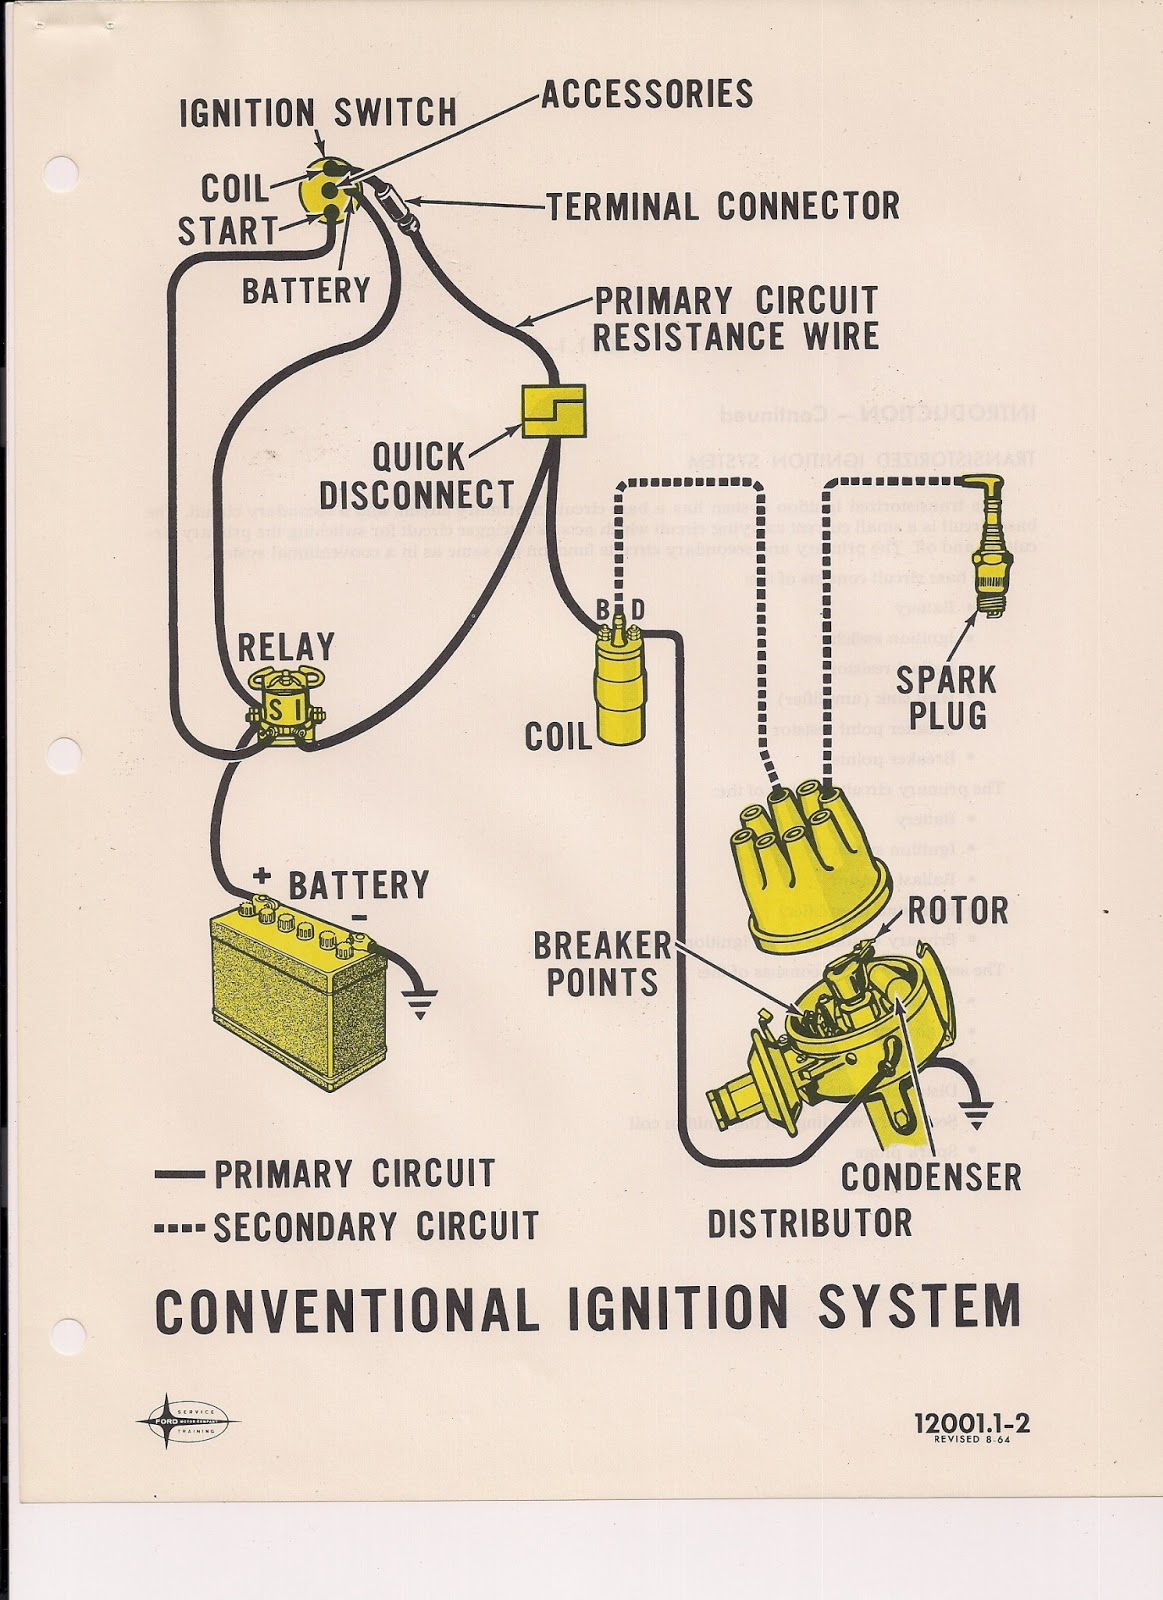 the care and feeding of ponies mustang ignition system 1965 and 1966 Distributor Wiring Diagram